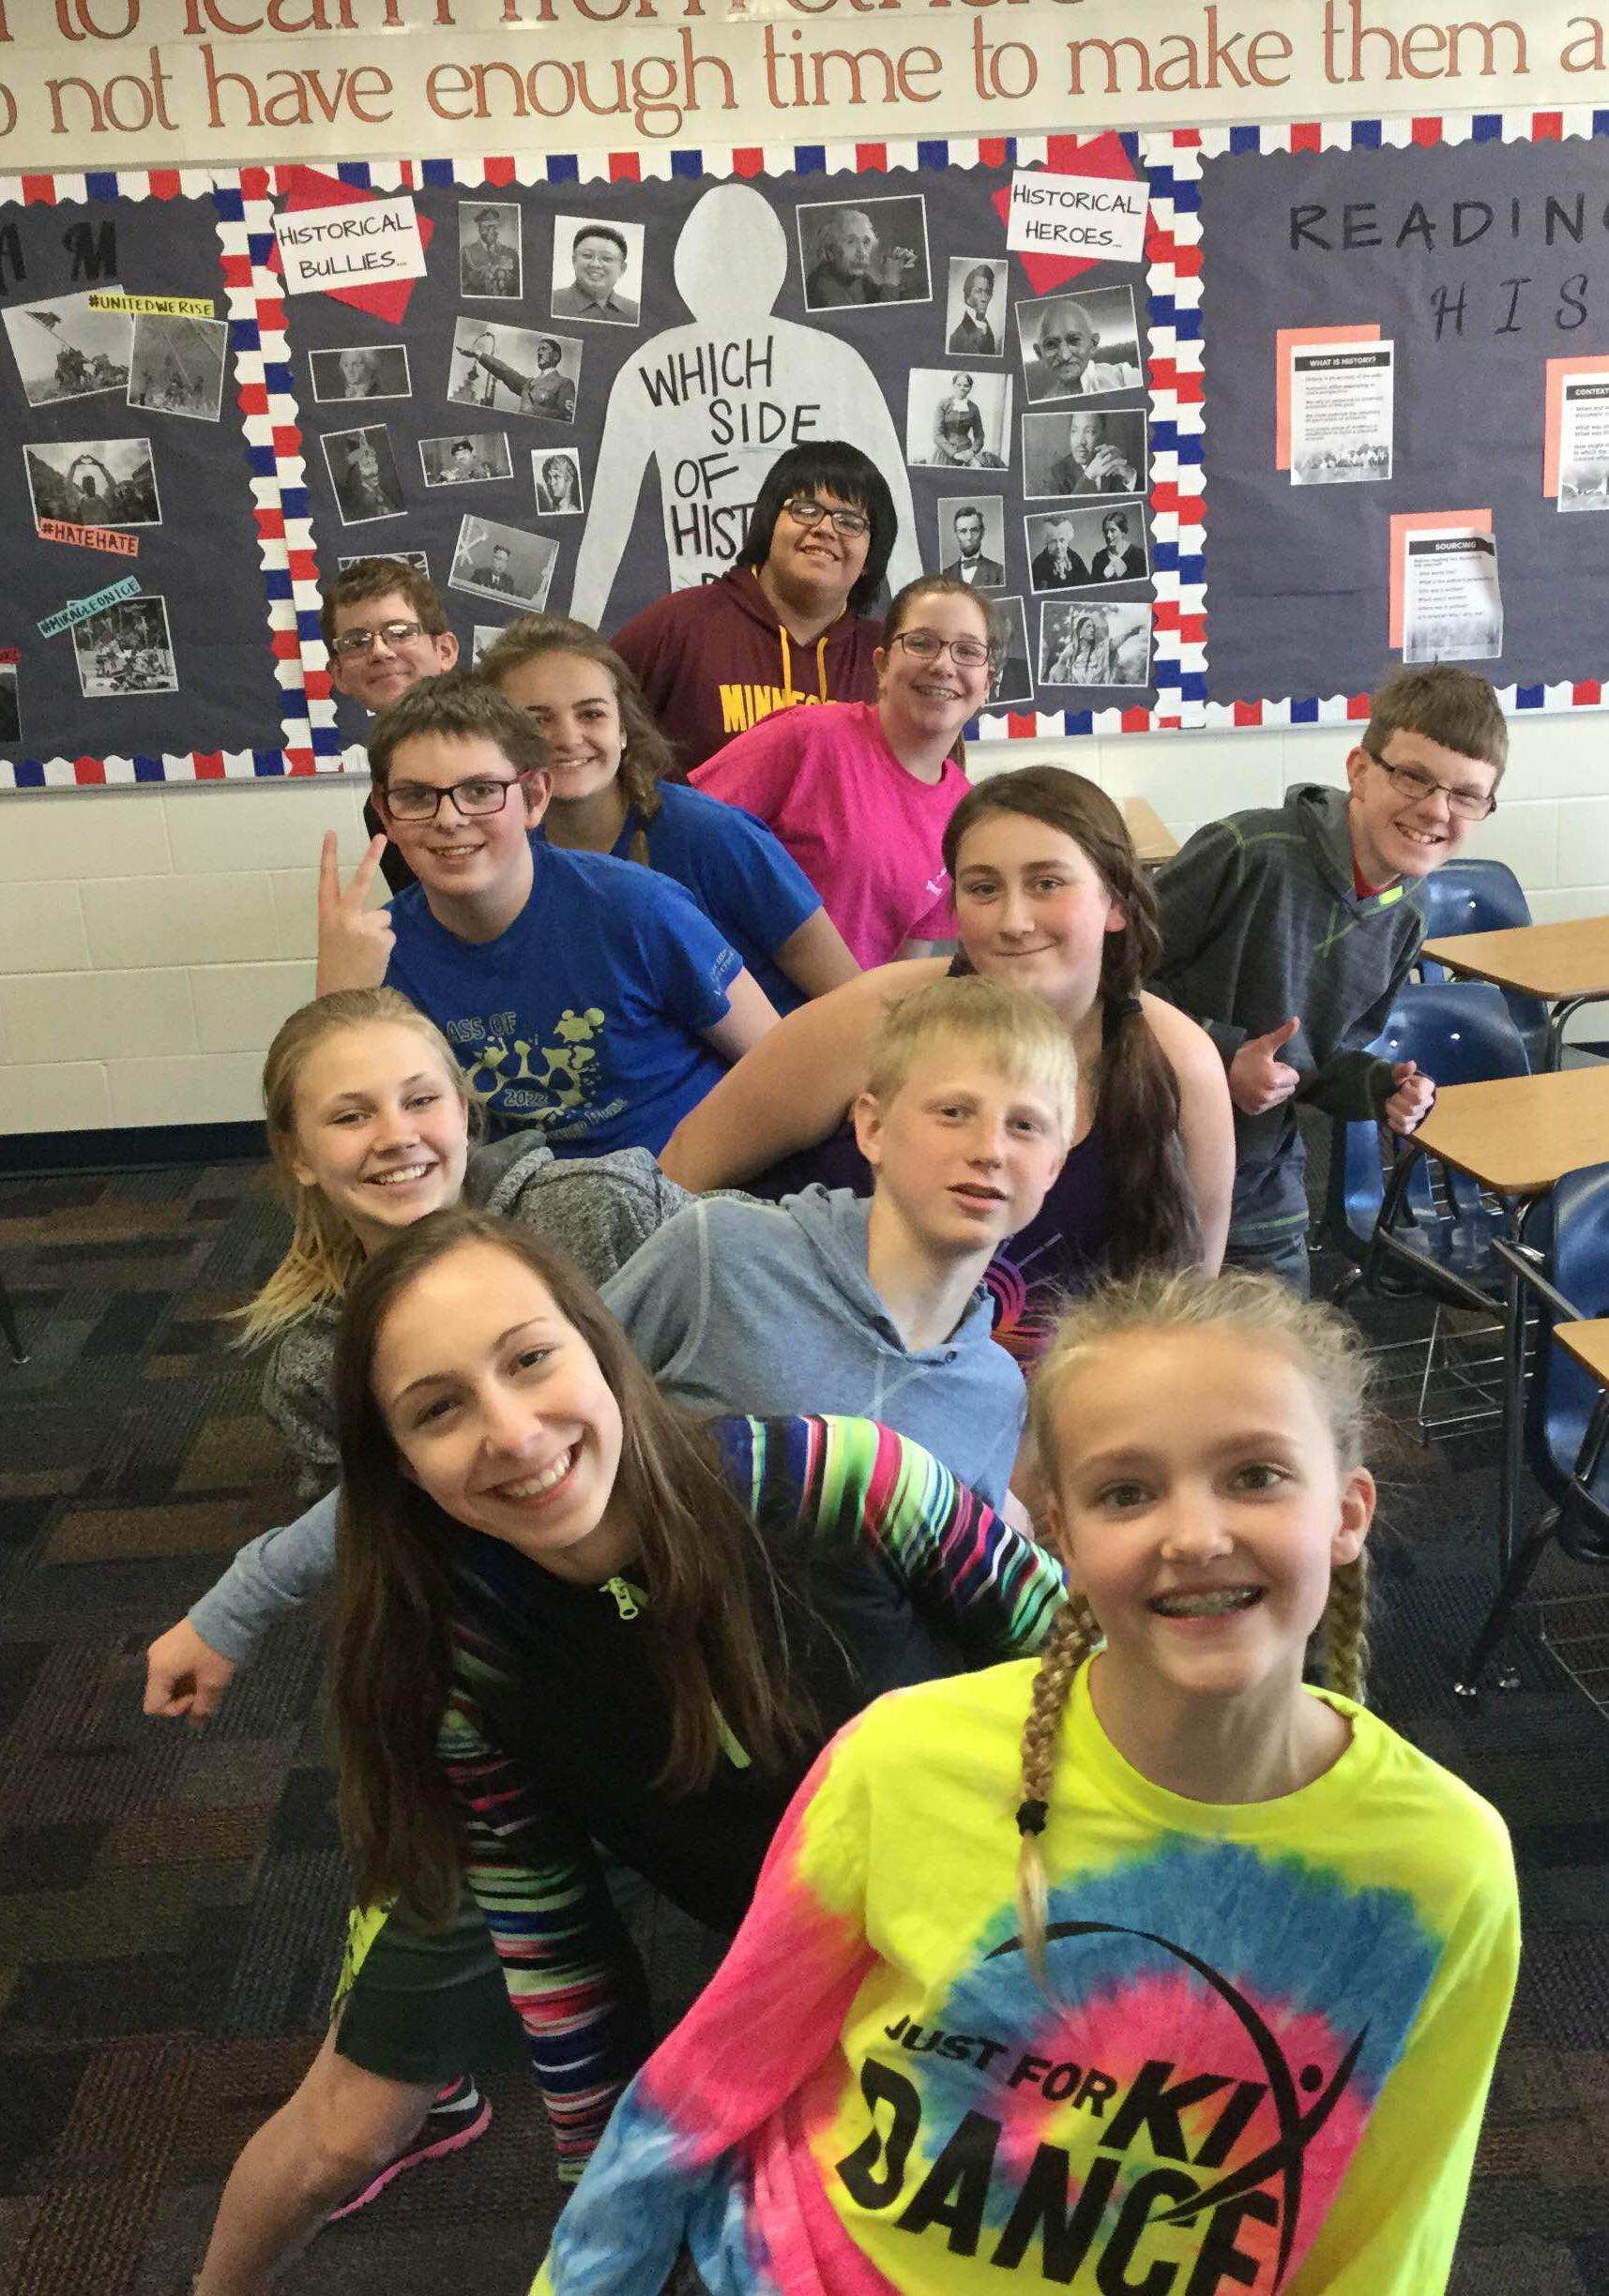 Franklin Middle School, Minn. | Zinn Education Project